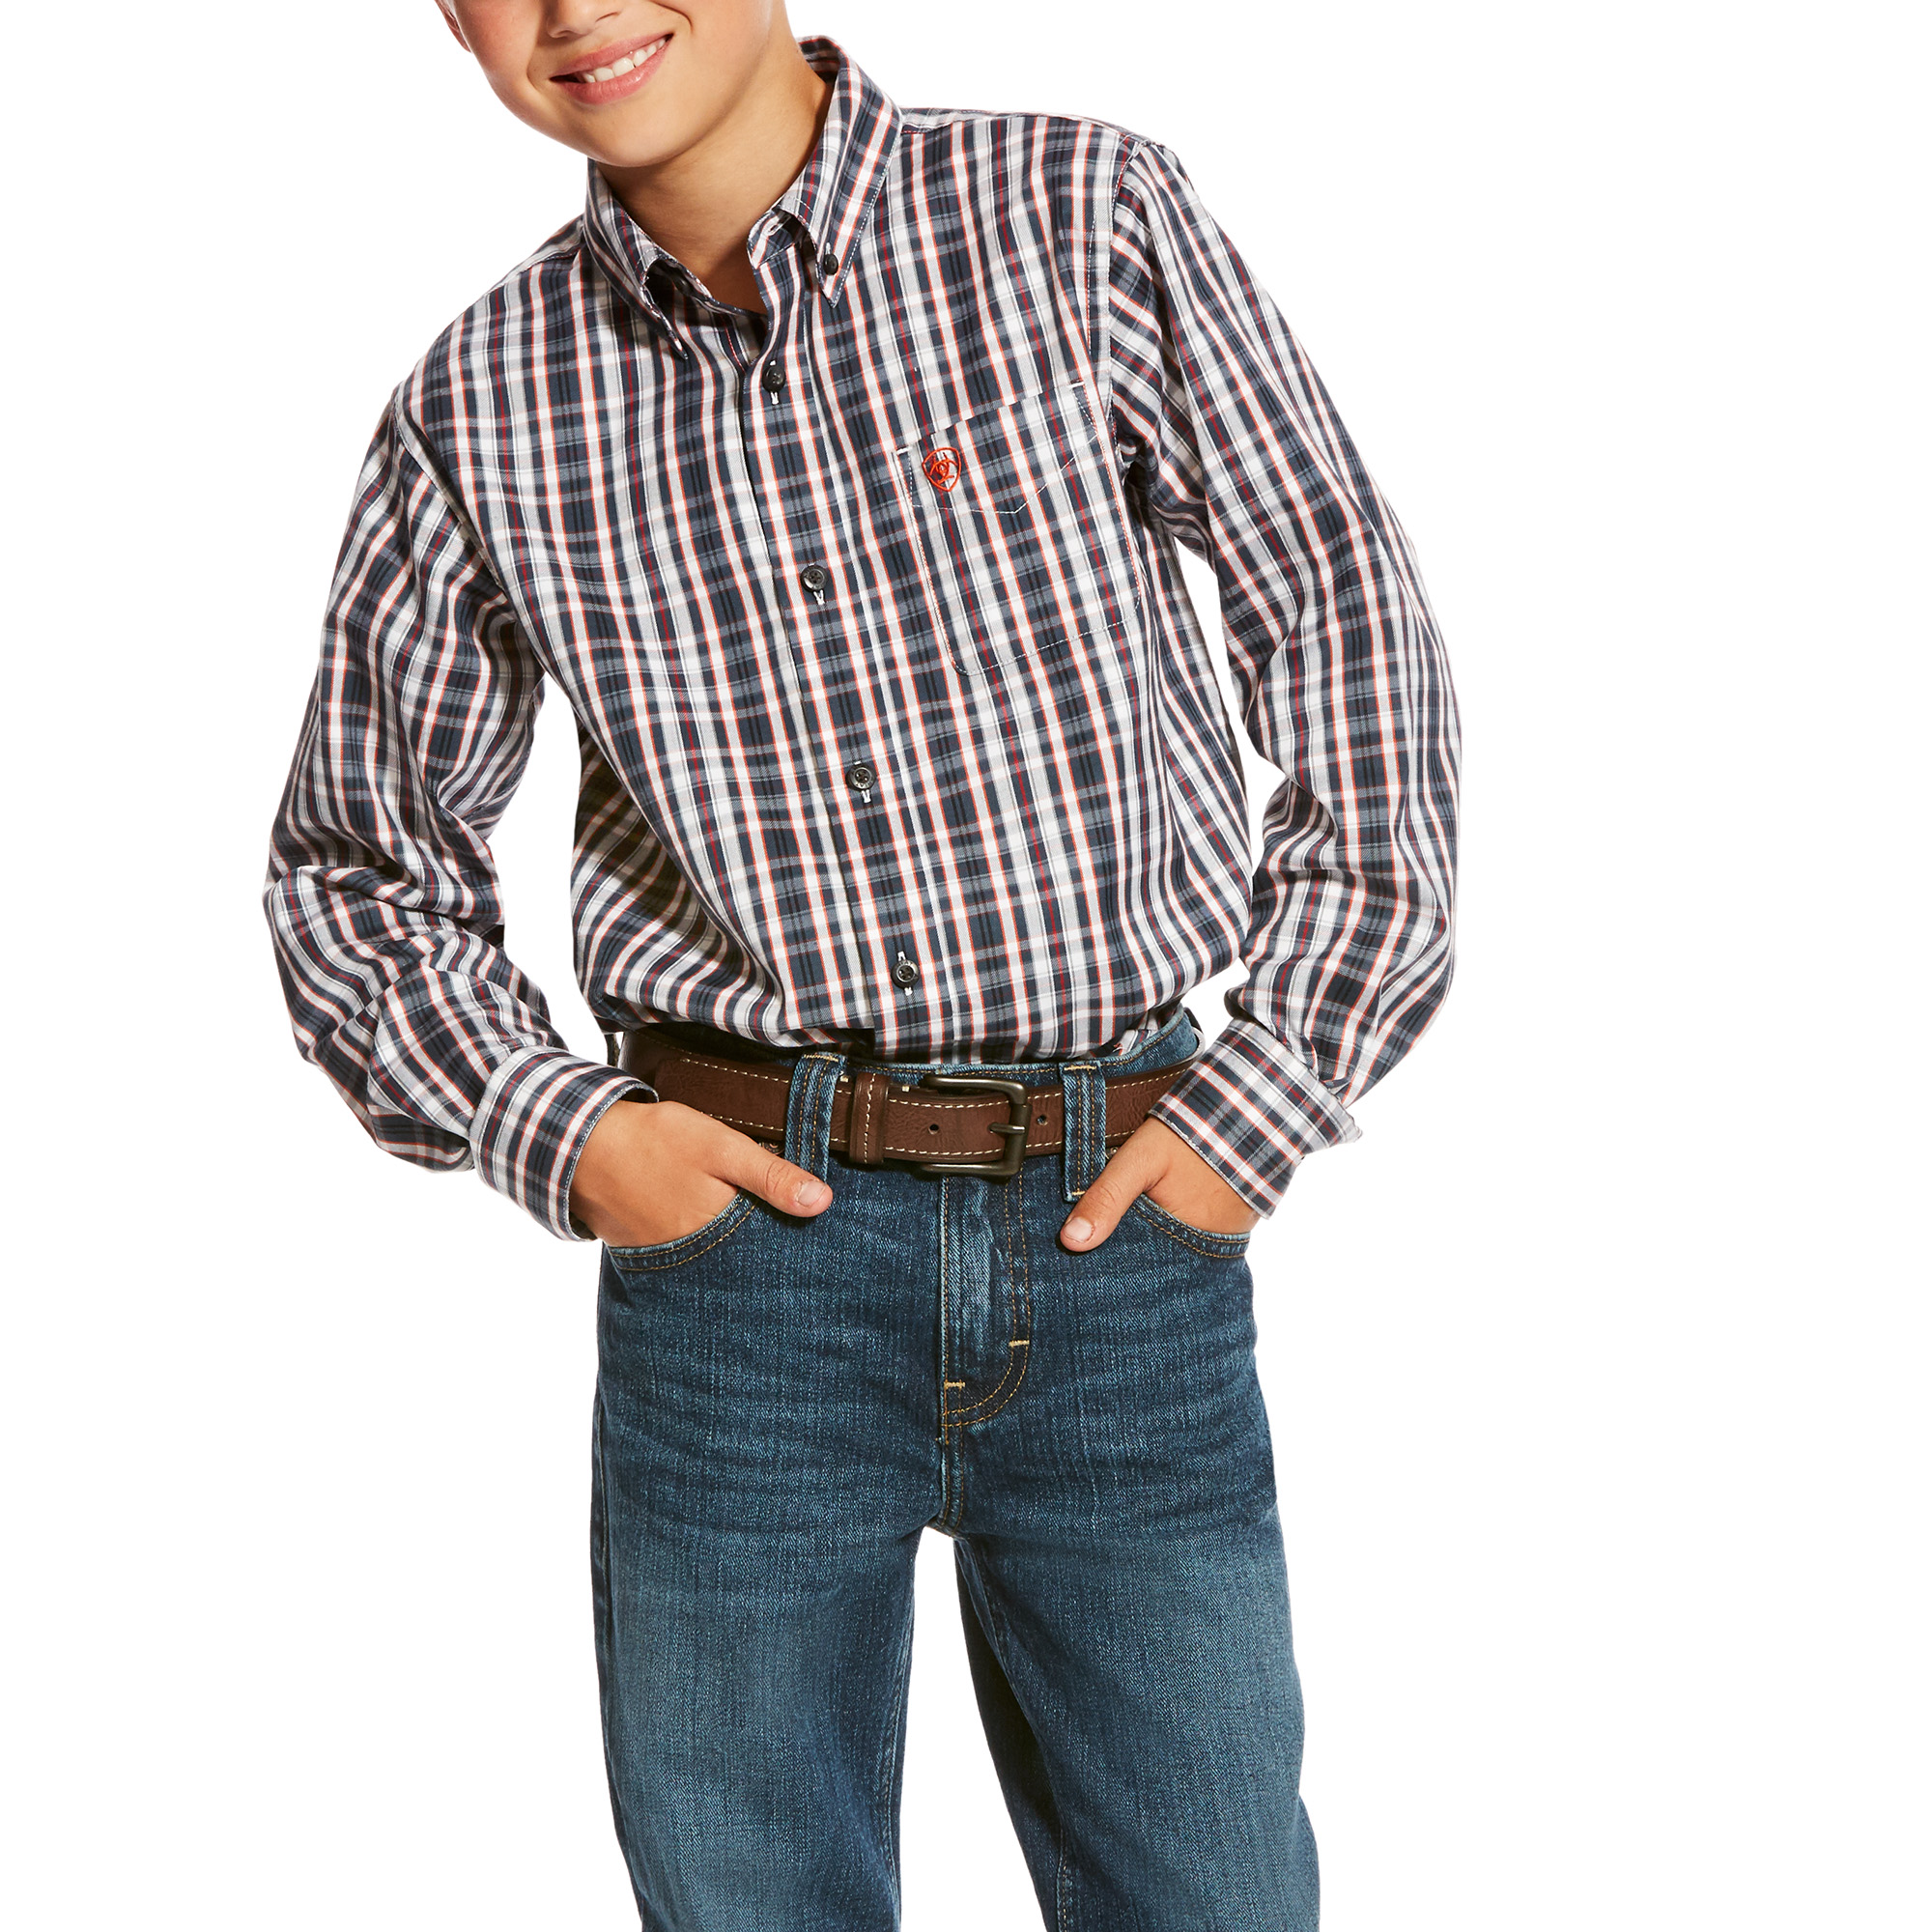 Caildwell Long Sleeve Performance Shirt from Ariat